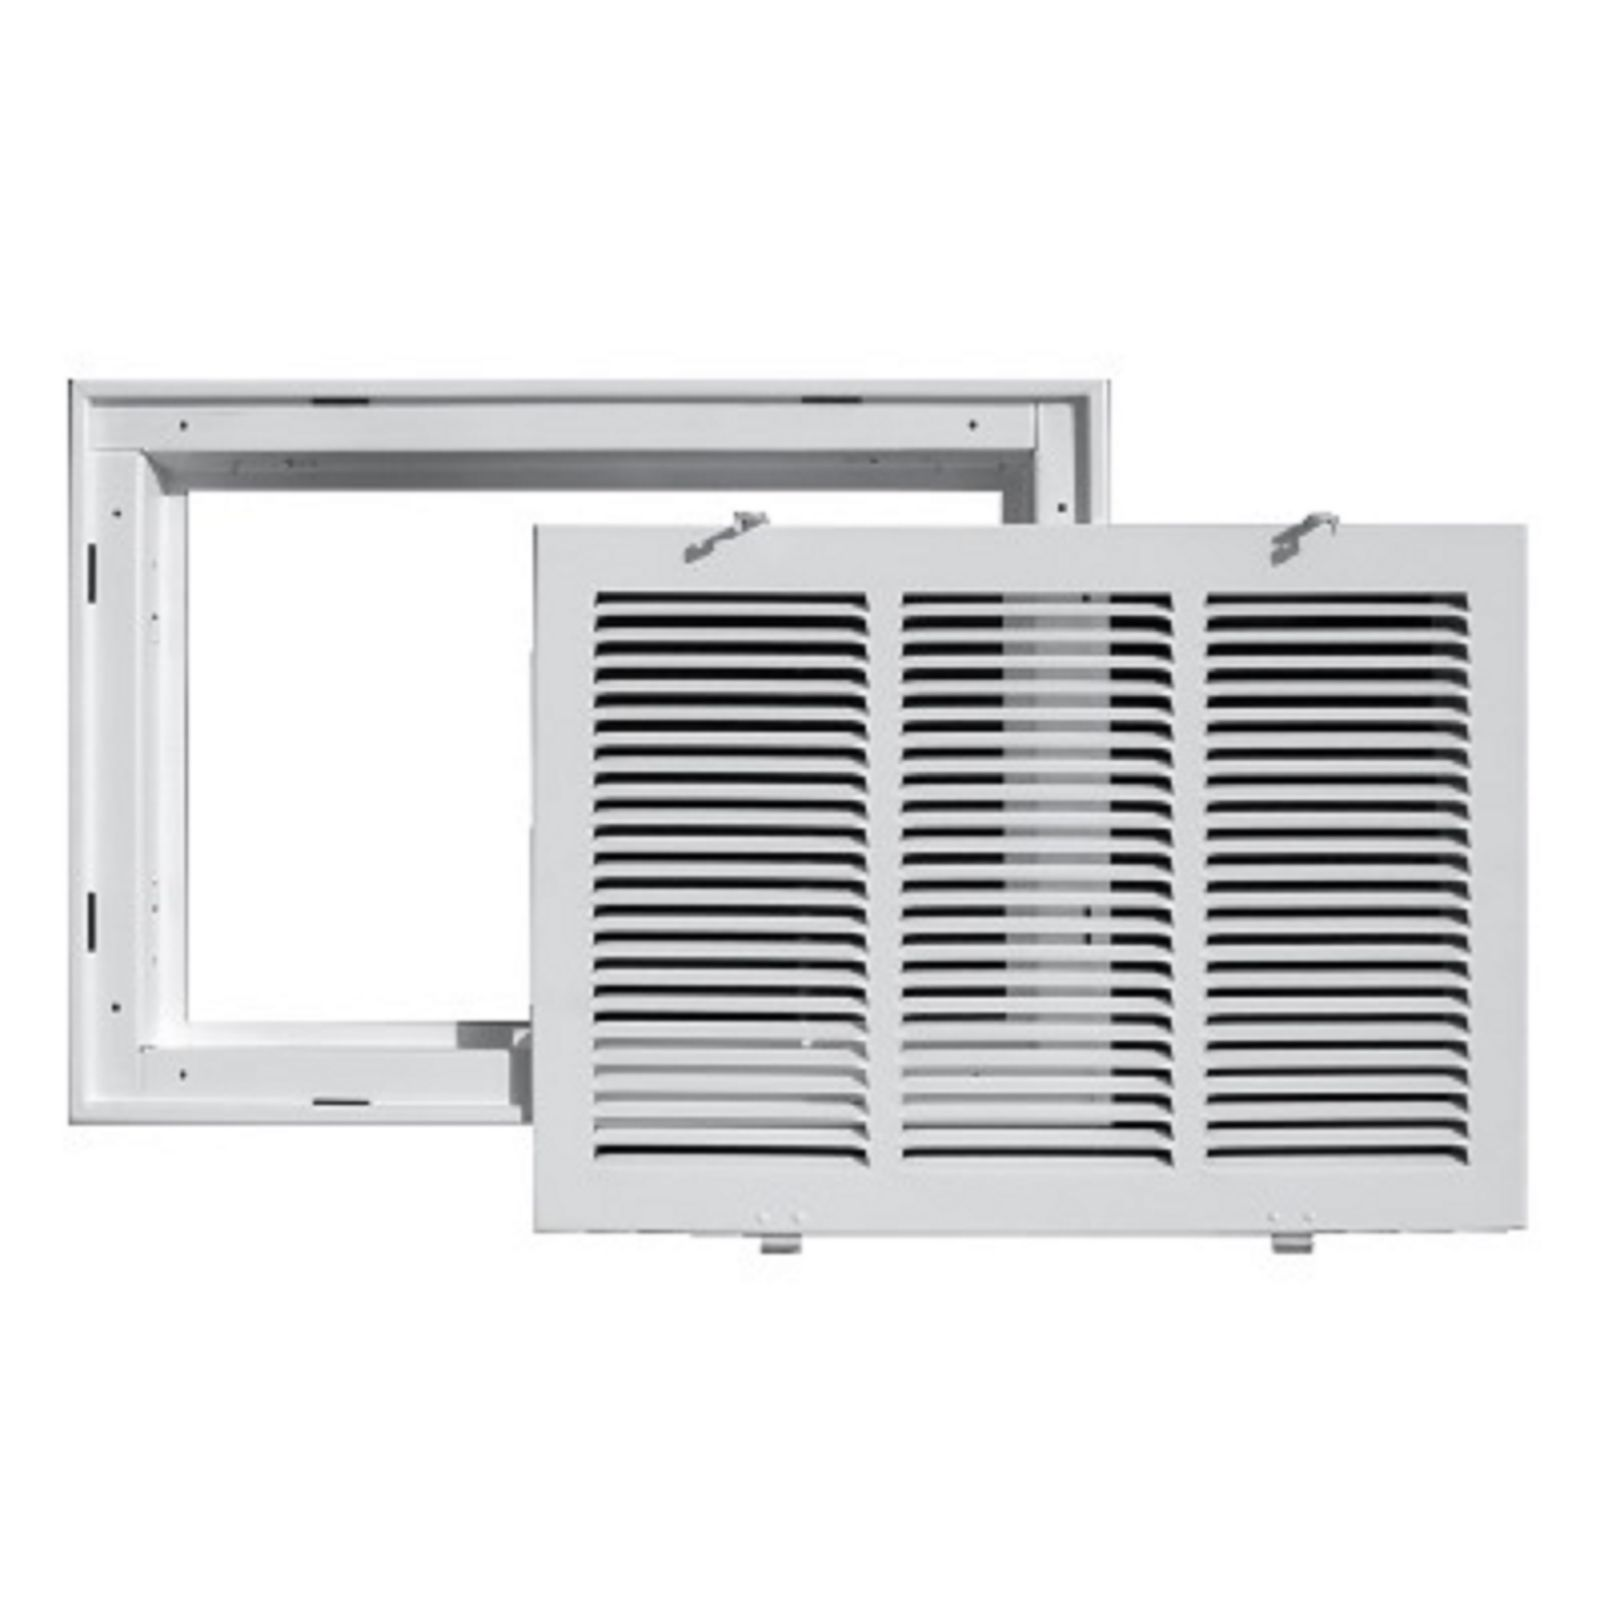 "TRUaire 190RF 12X12 - Steel Return Air Filter Grille With Removable Face, White, 12"" X 12"""